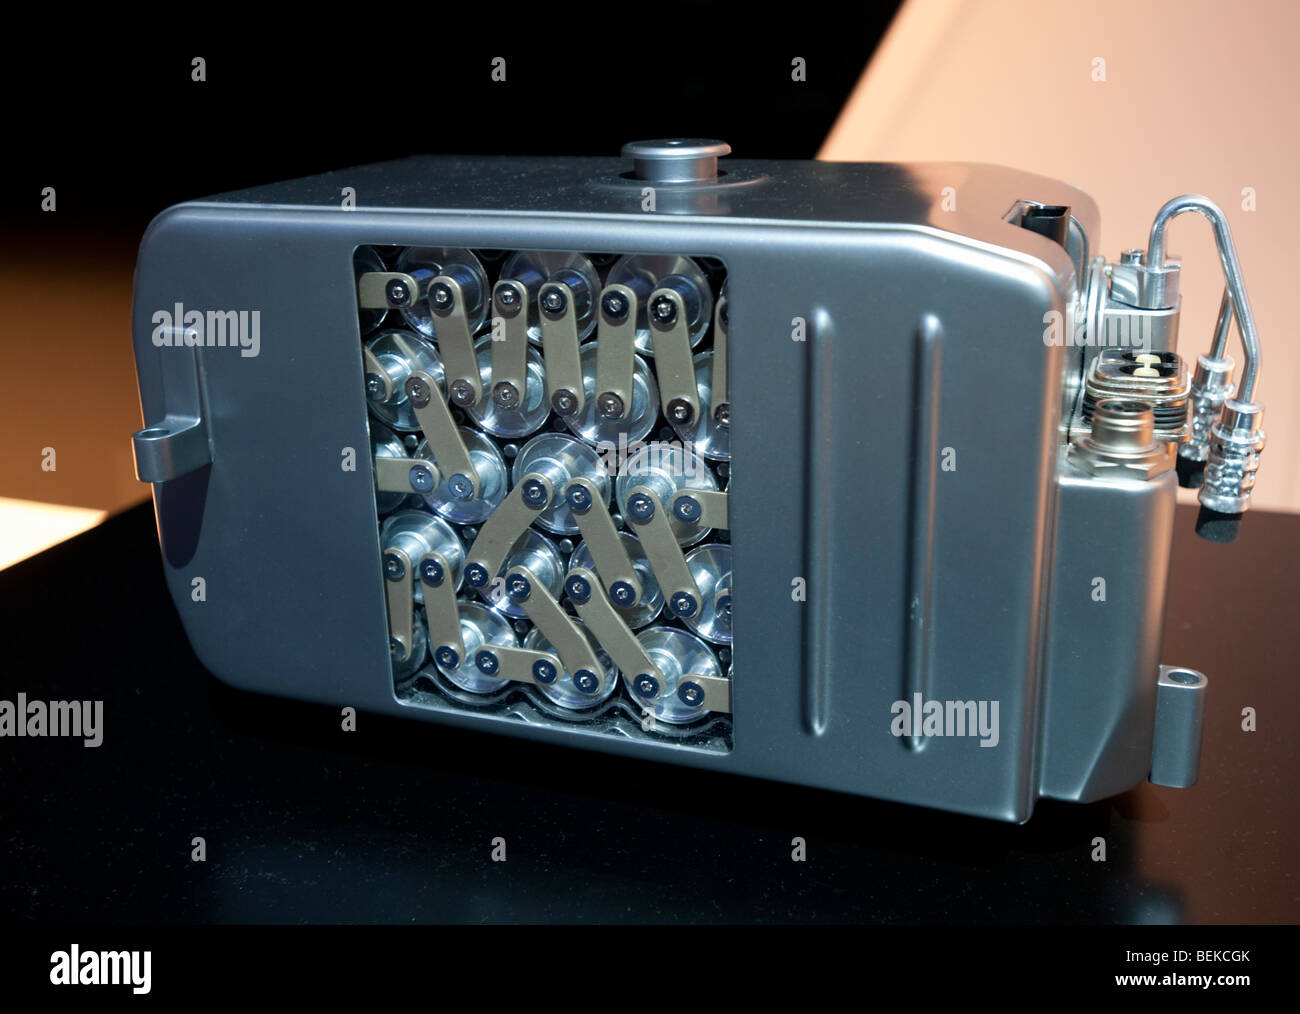 Detail of advanced lithium ion battery used in new electric powered cars at Frankfurt Motor Show 2009 Stock Photo